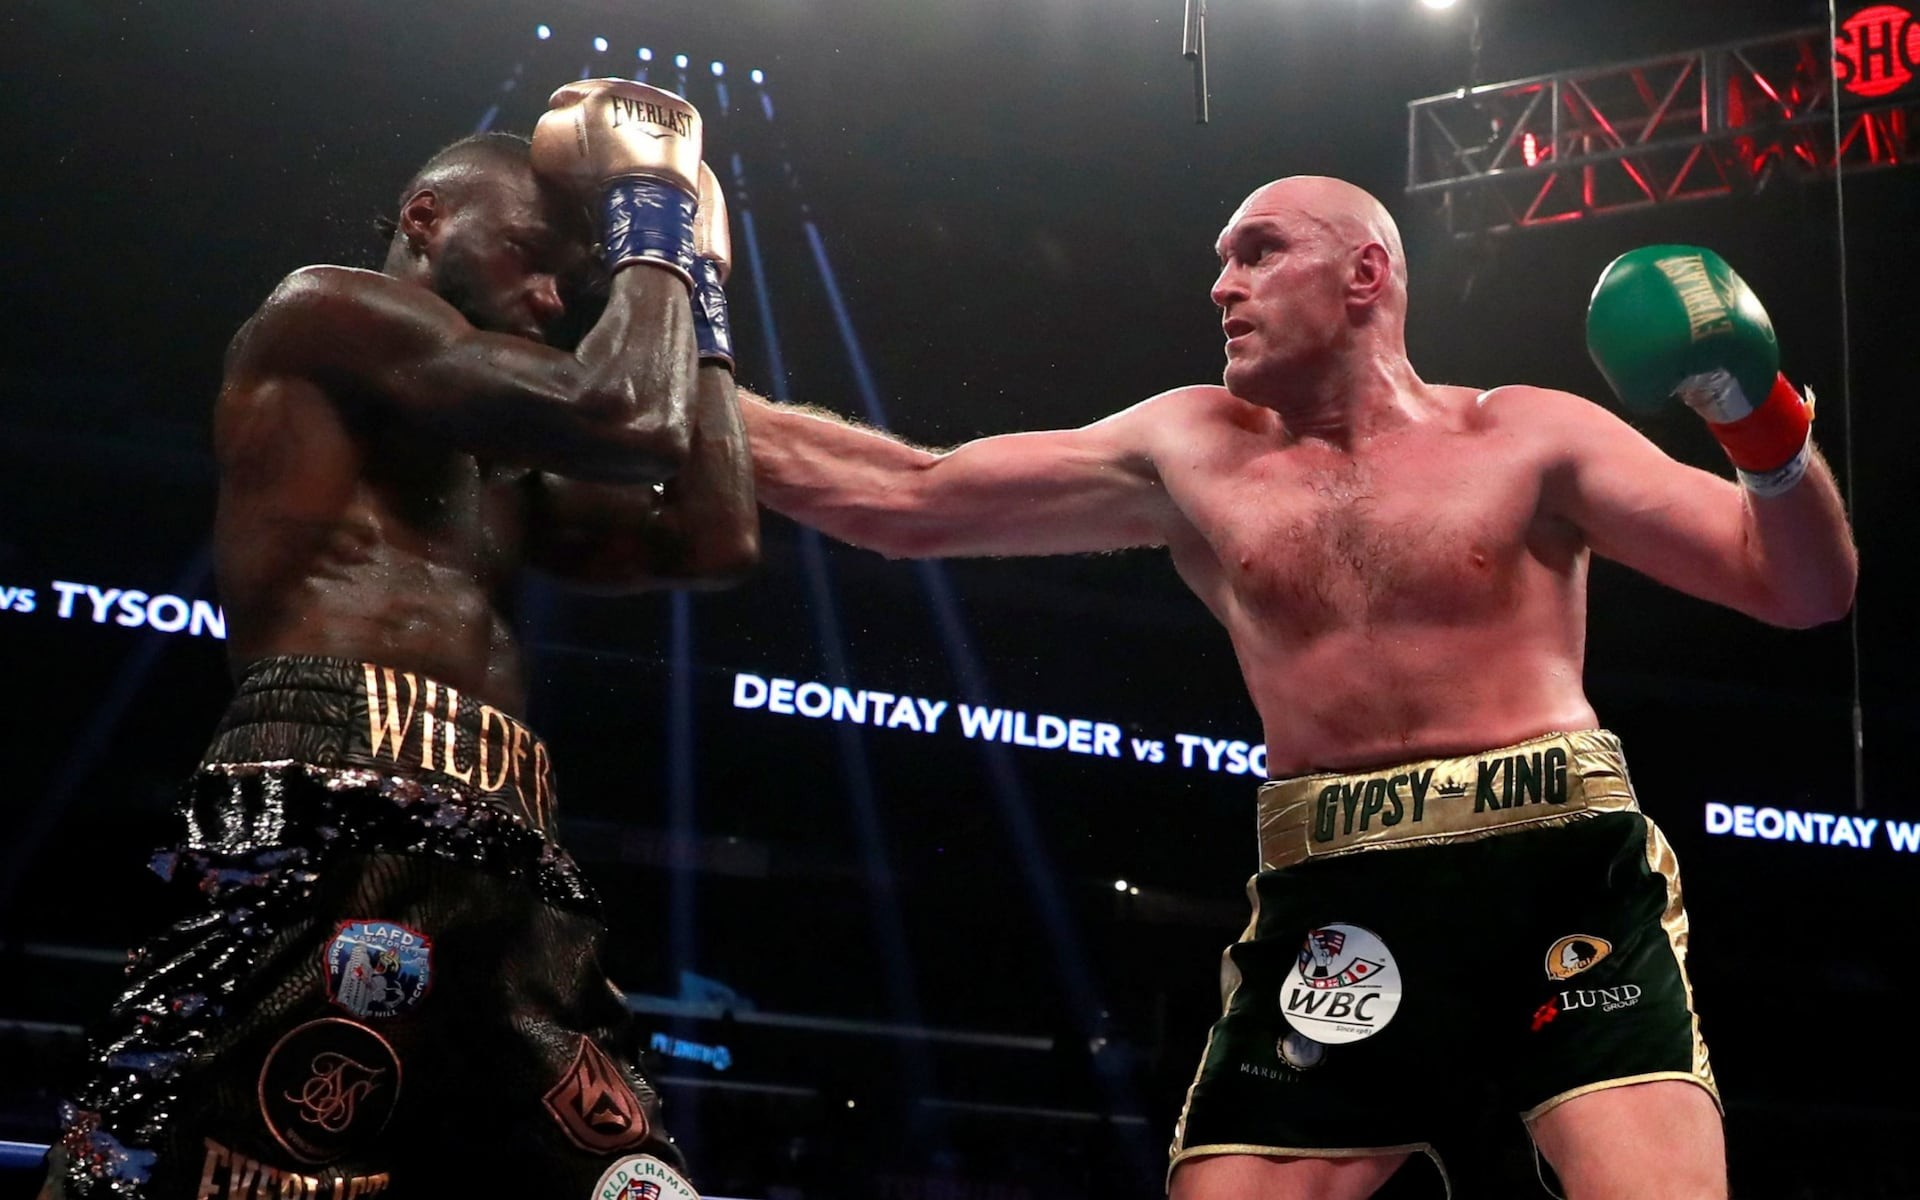 Deontay Wilder retains WBC heavyweight title by split draw with Tyson Fury - See results